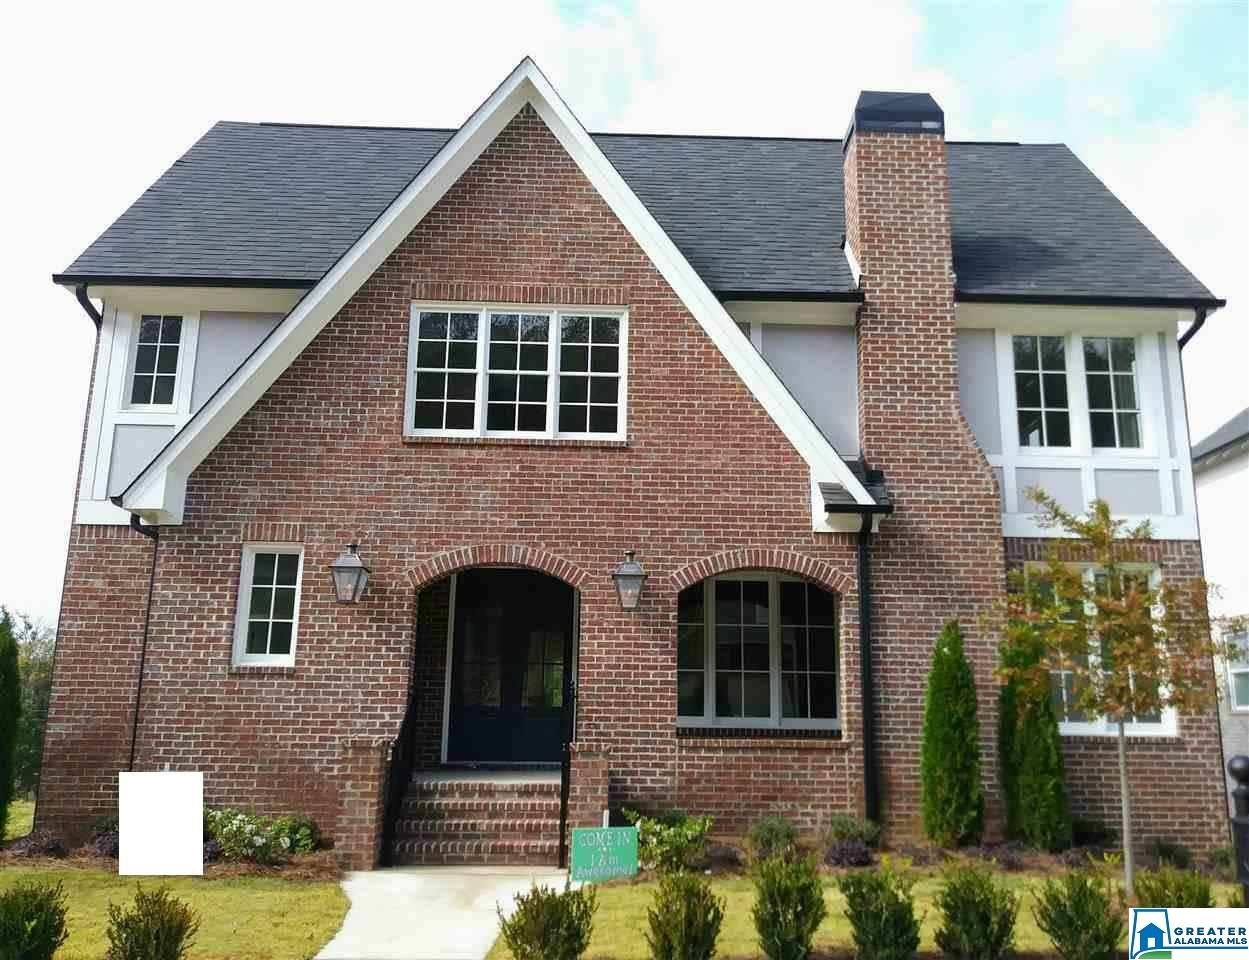 4695 MCGILL CT, Hoover, AL 35226 - #: 870549